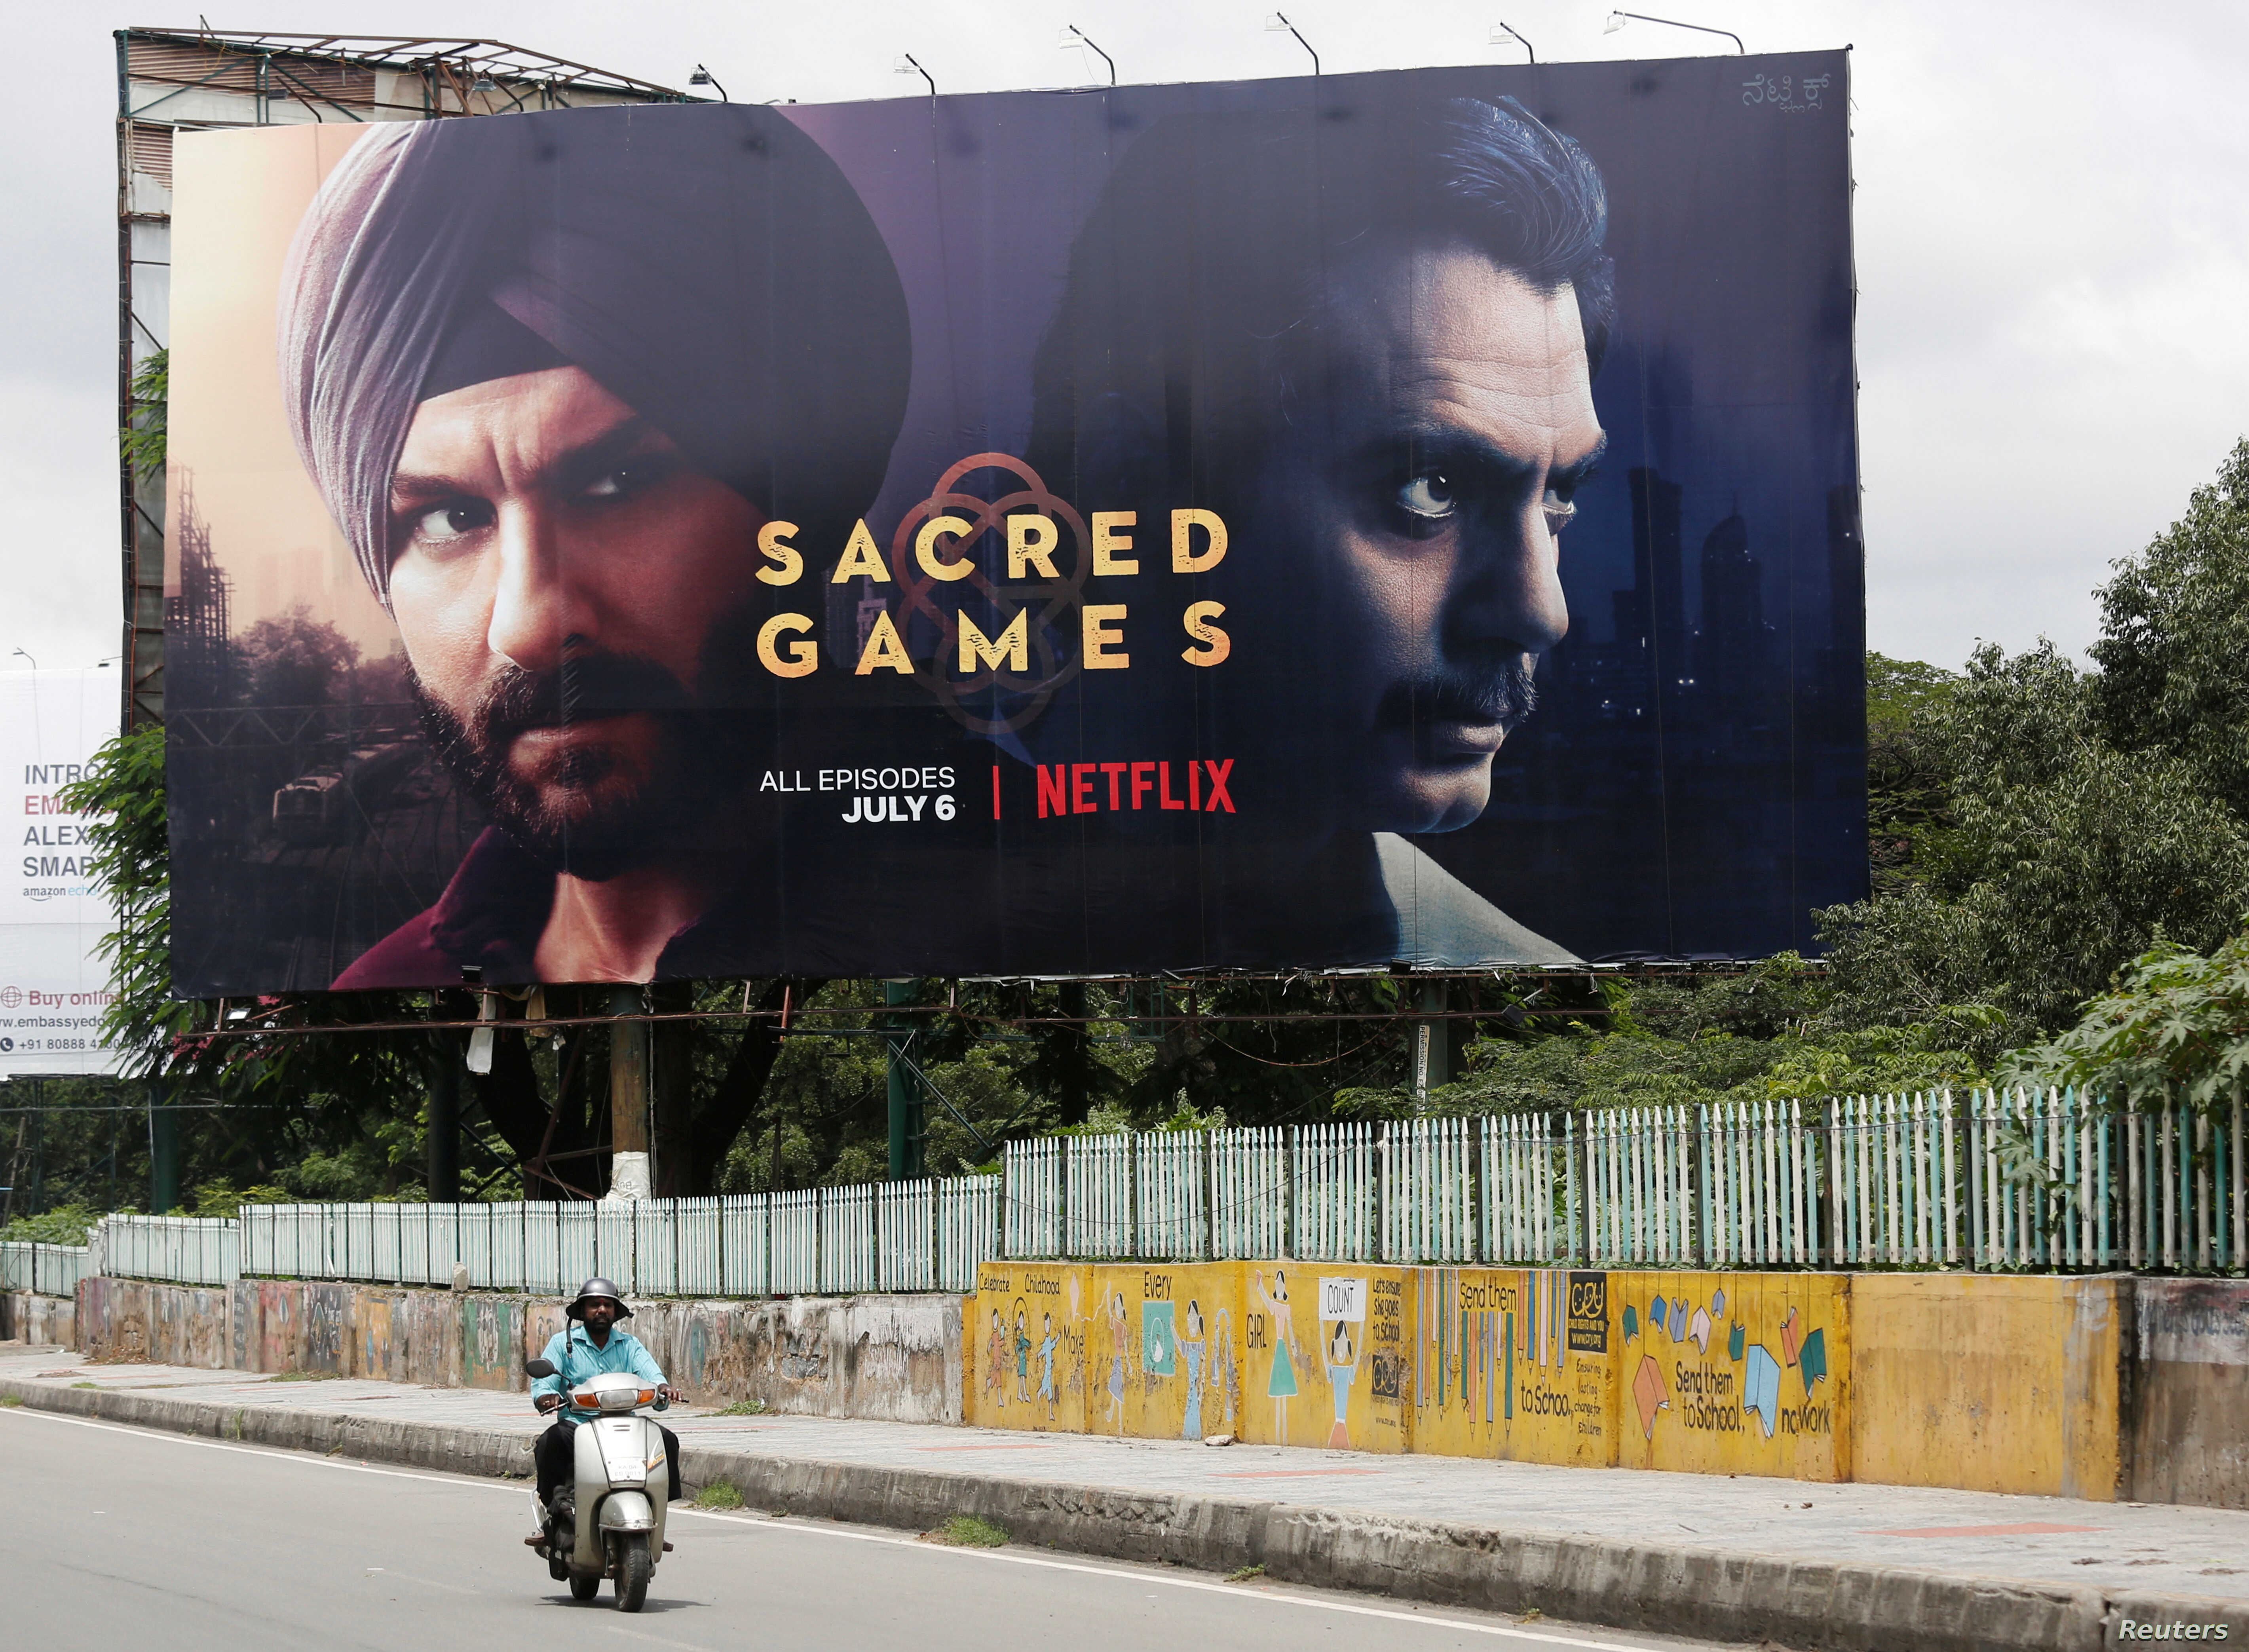 Netflix Taken to Court in India Over Portrayal of Former PM | Voice